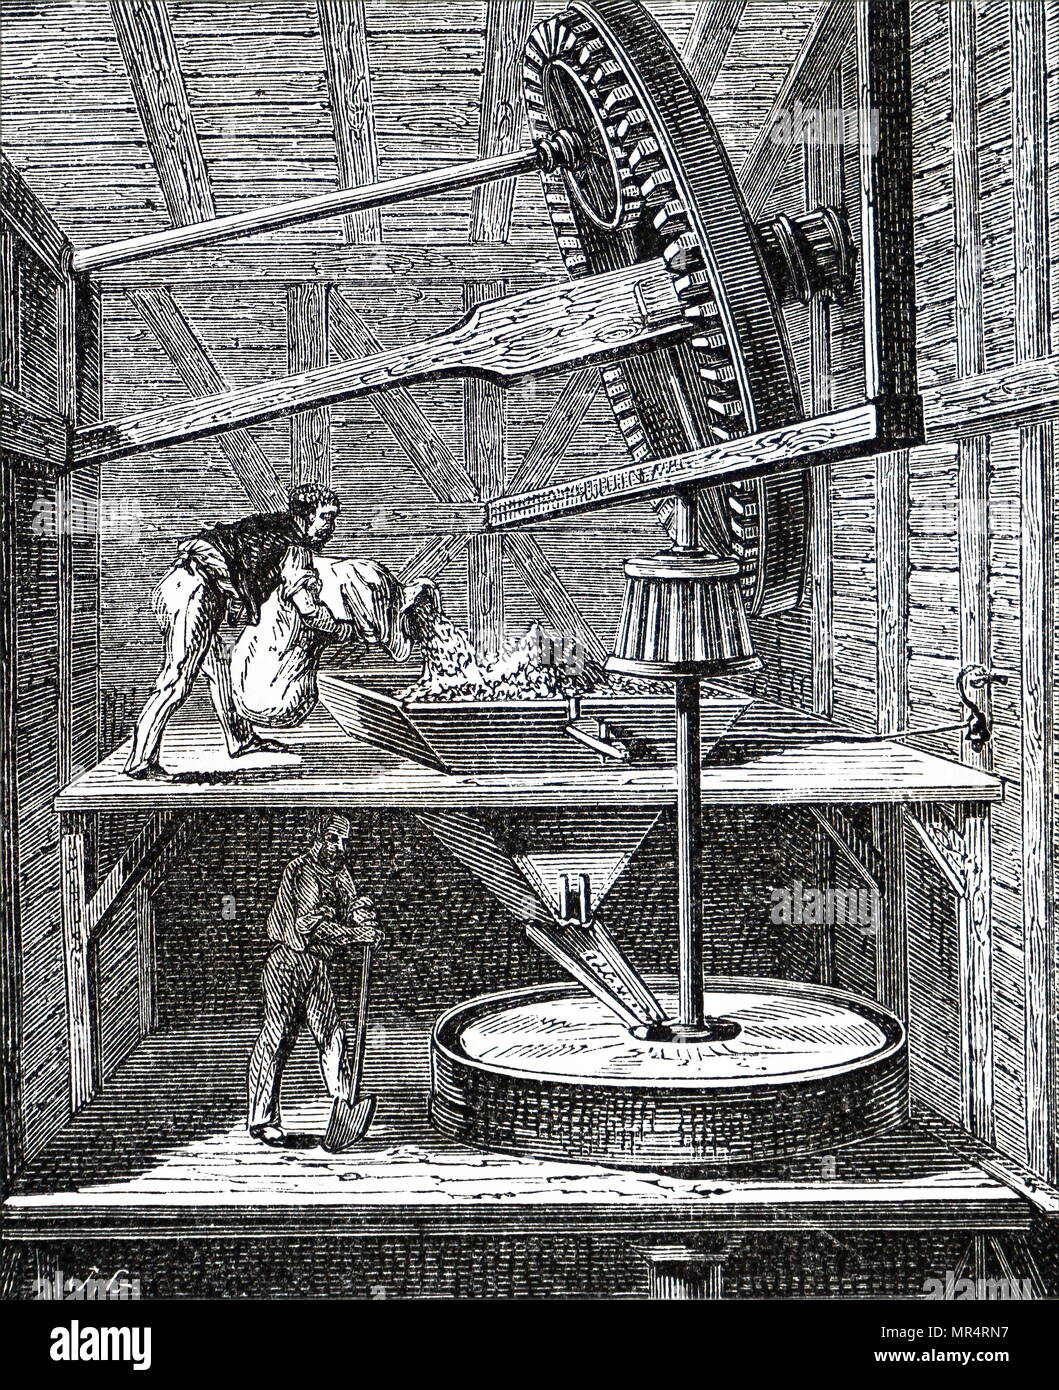 Sectional view of a windmill used to grind corn. On the upper floor the miller is feeding grain into the hopper which takes it to the centre of the millstone where it is ground into flour. Dated 19th century - Stock Image